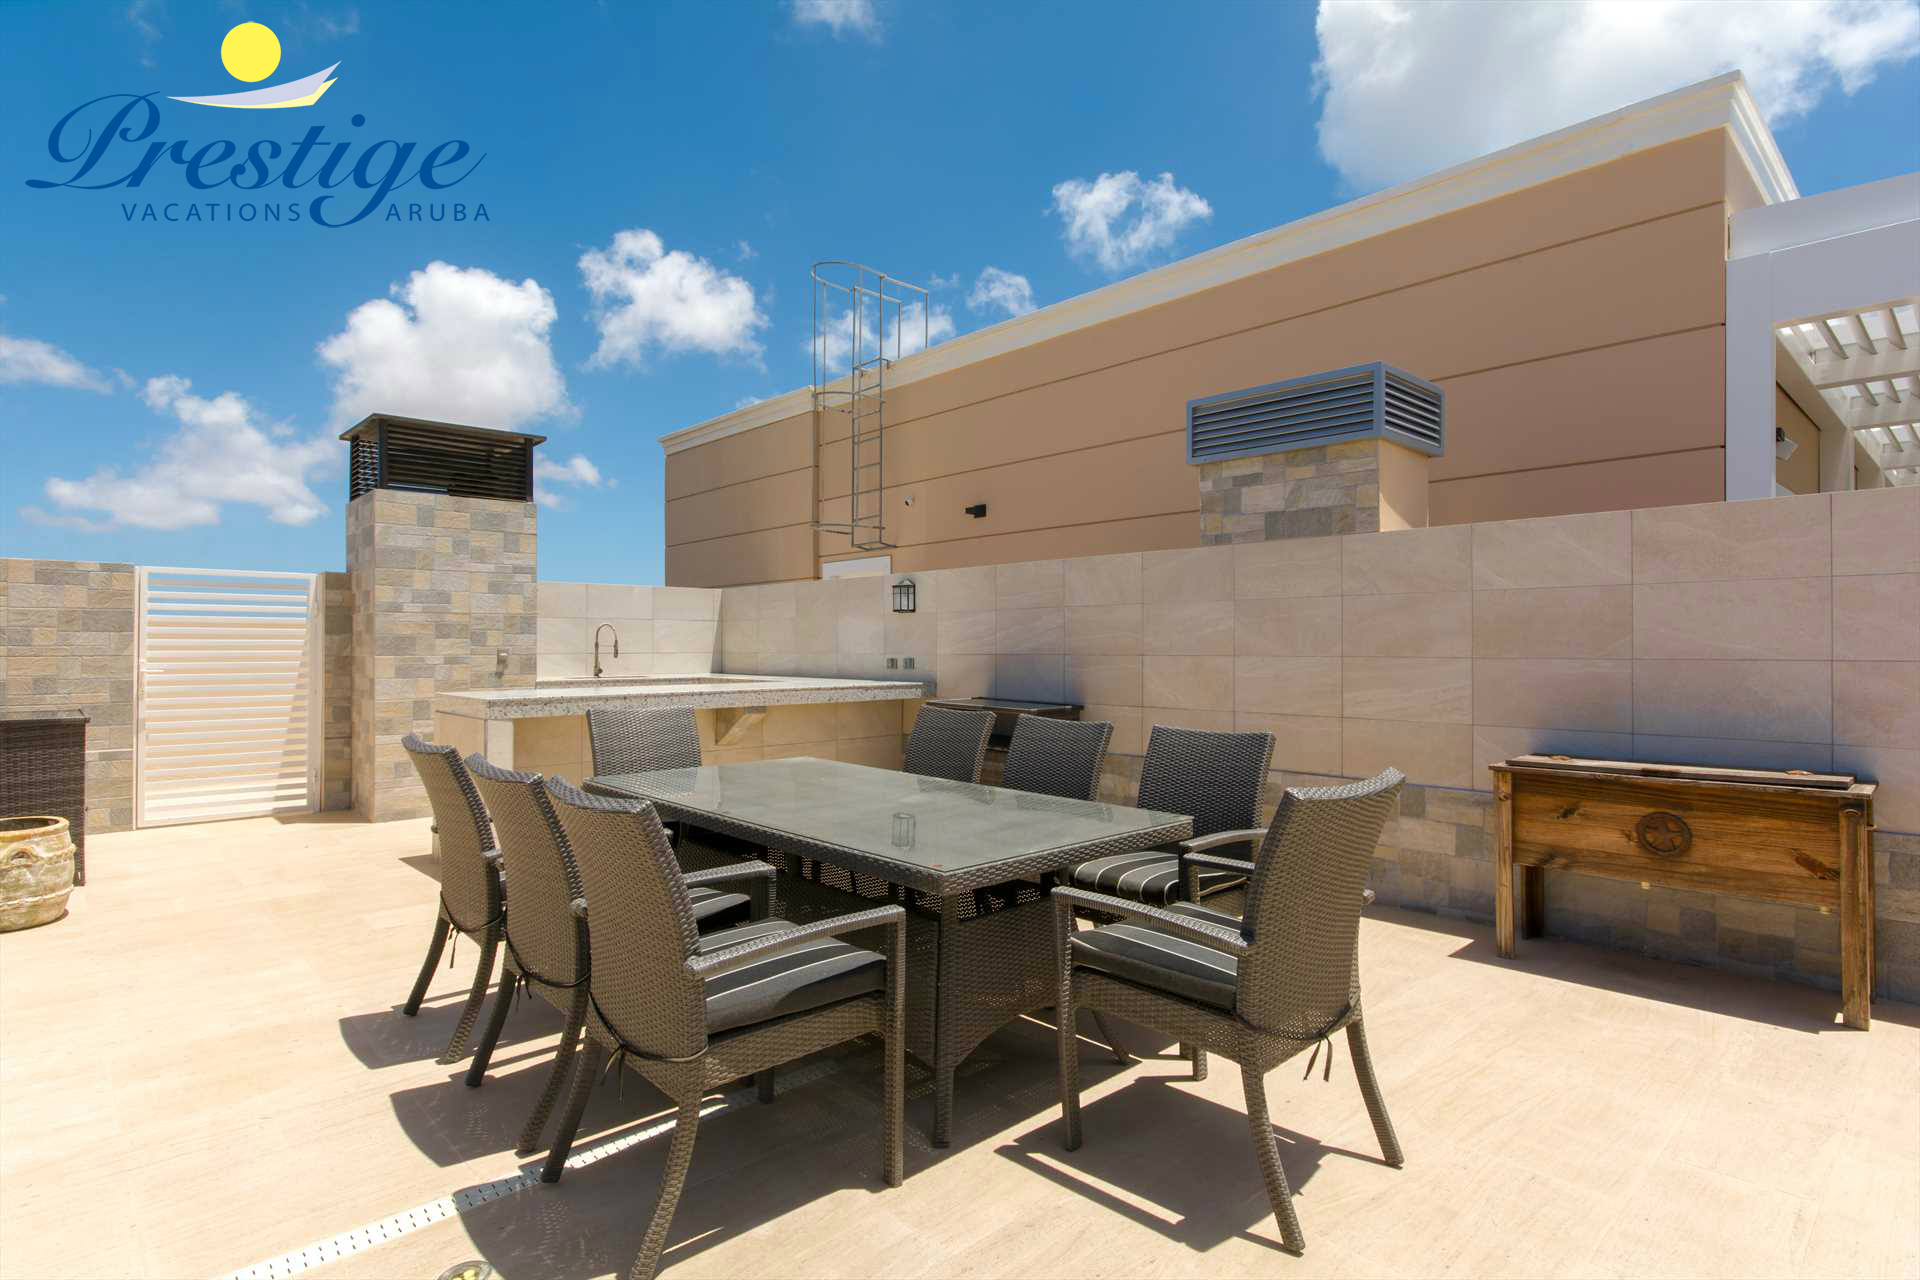 Outdoor kitchen with a sink, cooking plate, a wine fridge, and outdoor dining table